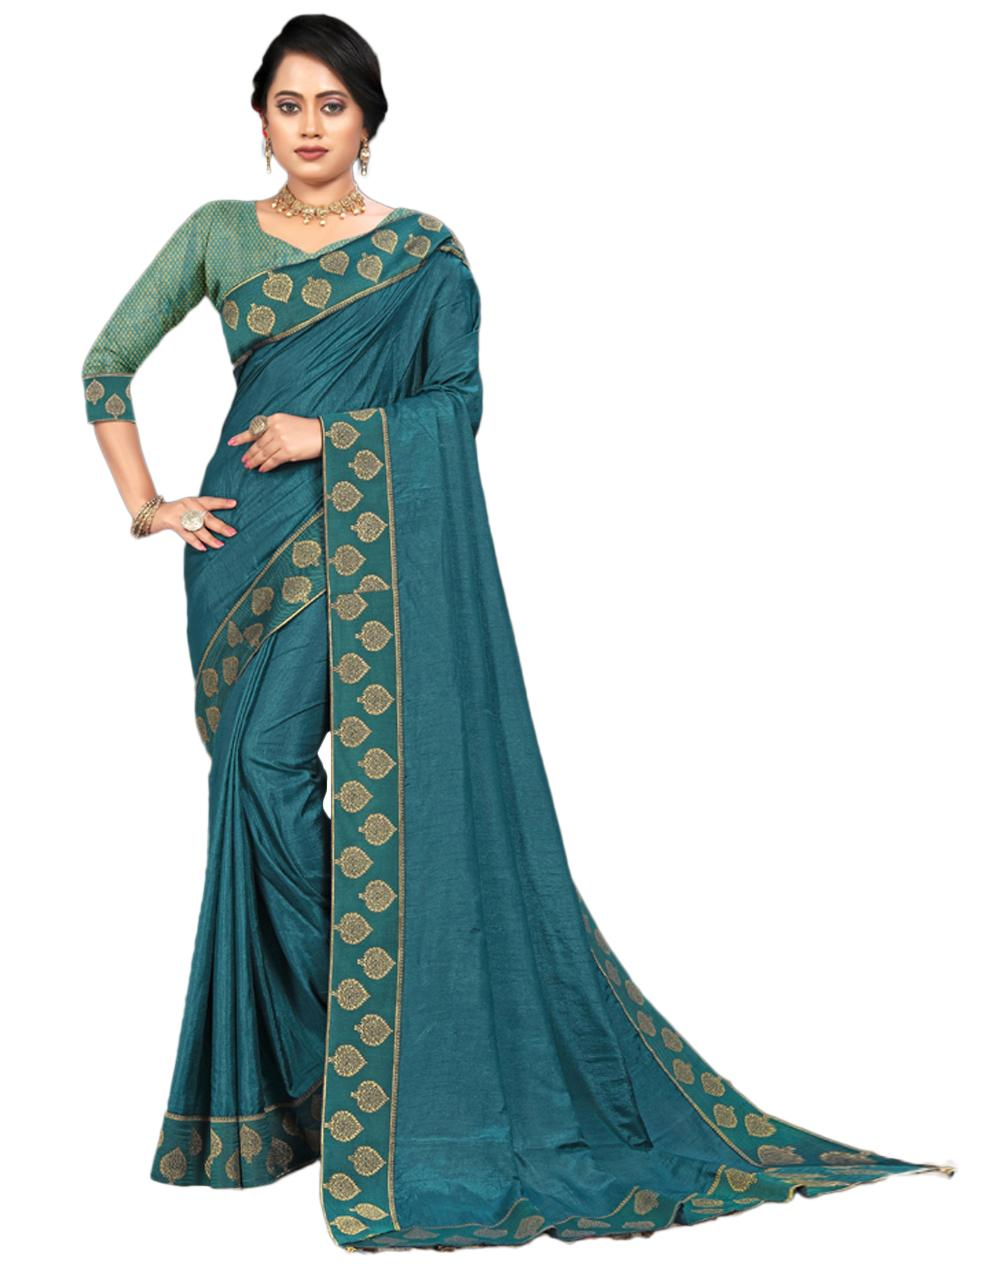 Teal Blue Vichitra silk Saree With Blouse IW24556